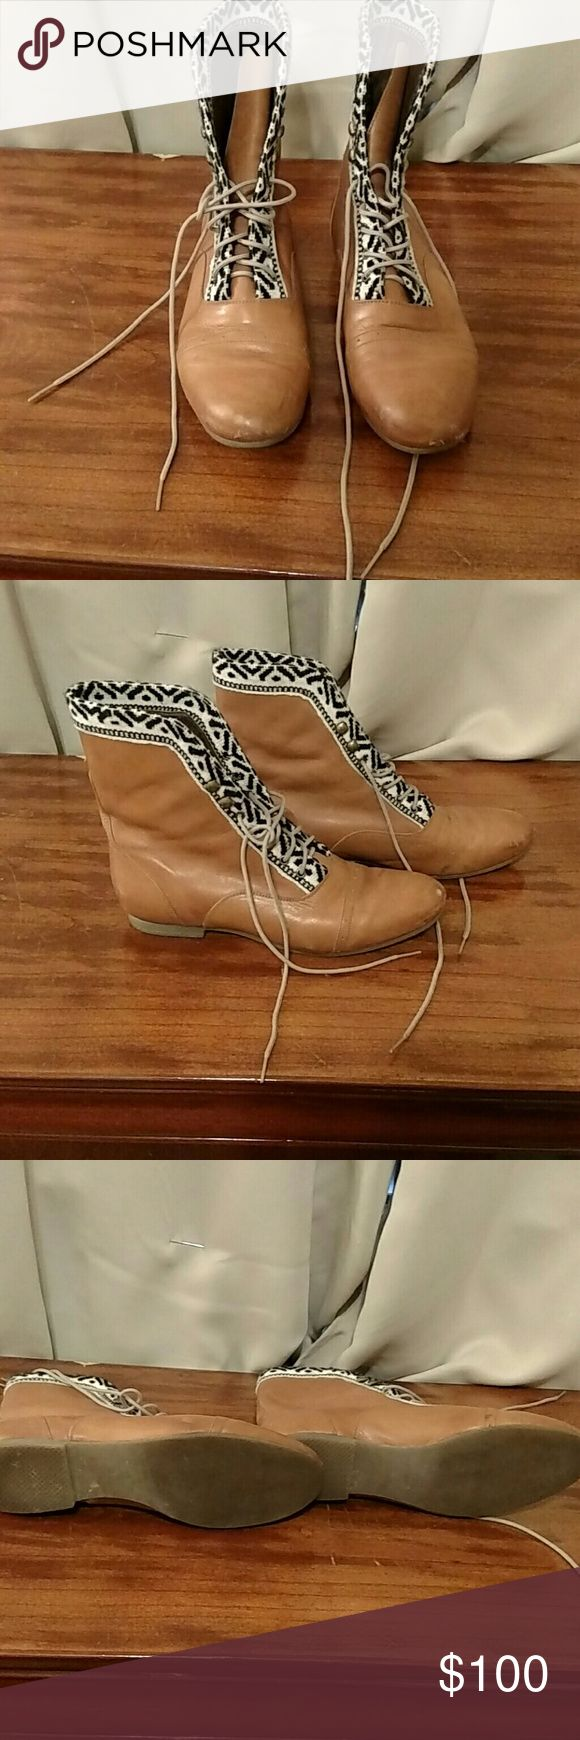 Fortress of Inca Tan booties Lovely honey tan leather boots with cloth trim,they do have a bit of scuffing on the tip of the boot but a bit of shoe polish would remedy that.They are a size 9 and fit me a little bit big.Feel free to make an offer! Freshly polished! fortress of Inca Shoes Ankle Boots & Booties